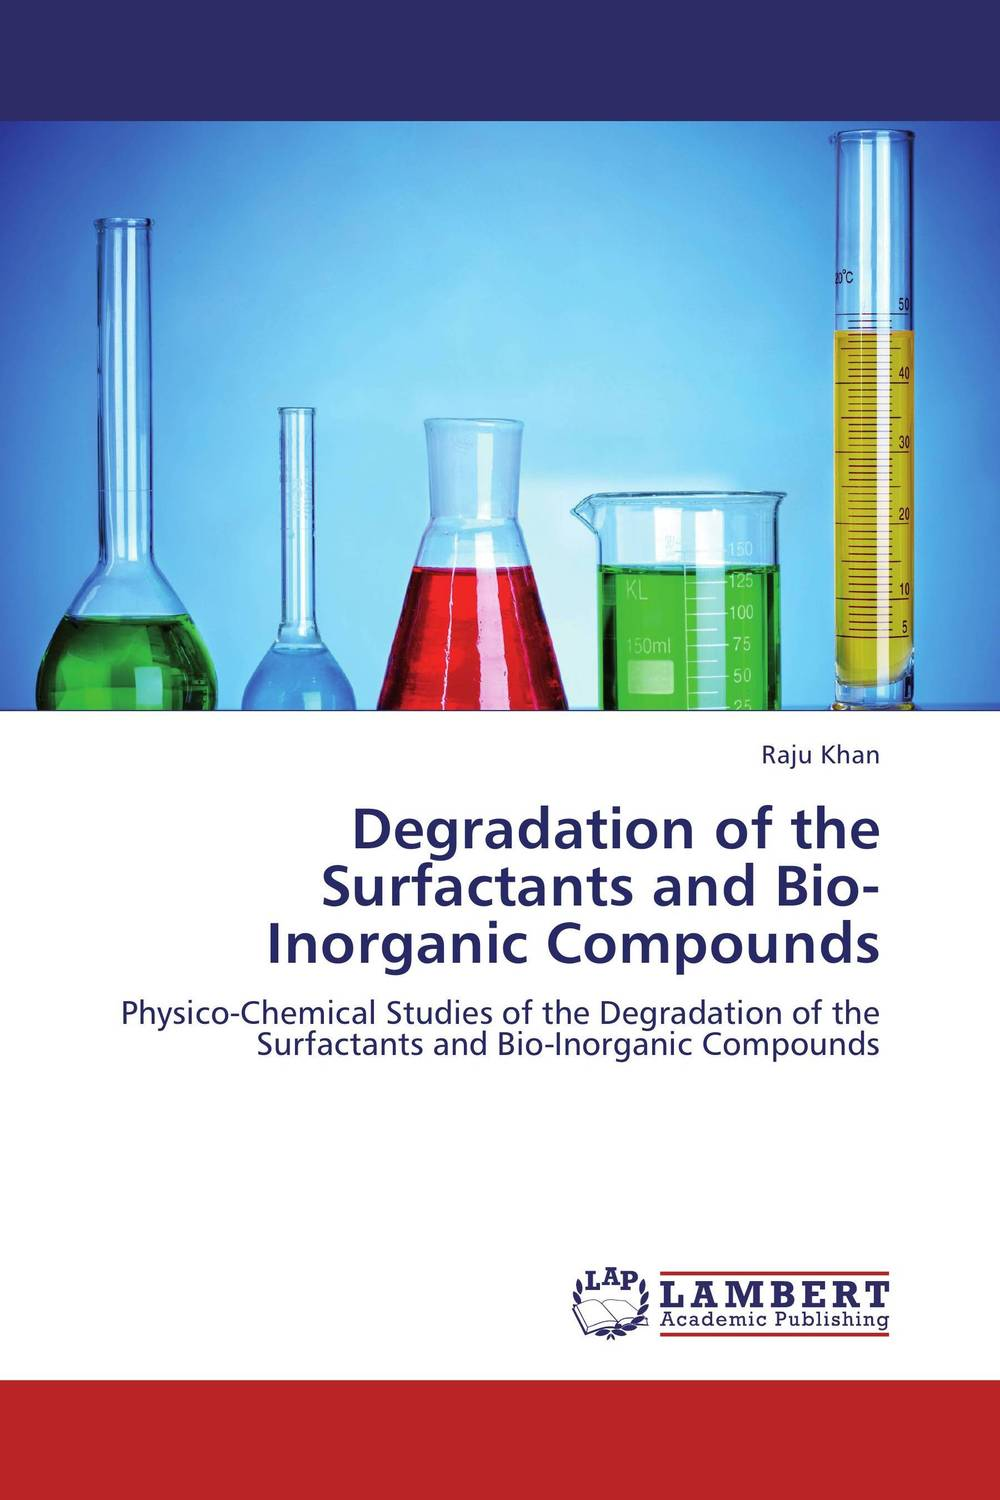 Degradation of the Surfactants and Bio-Inorganic Compounds